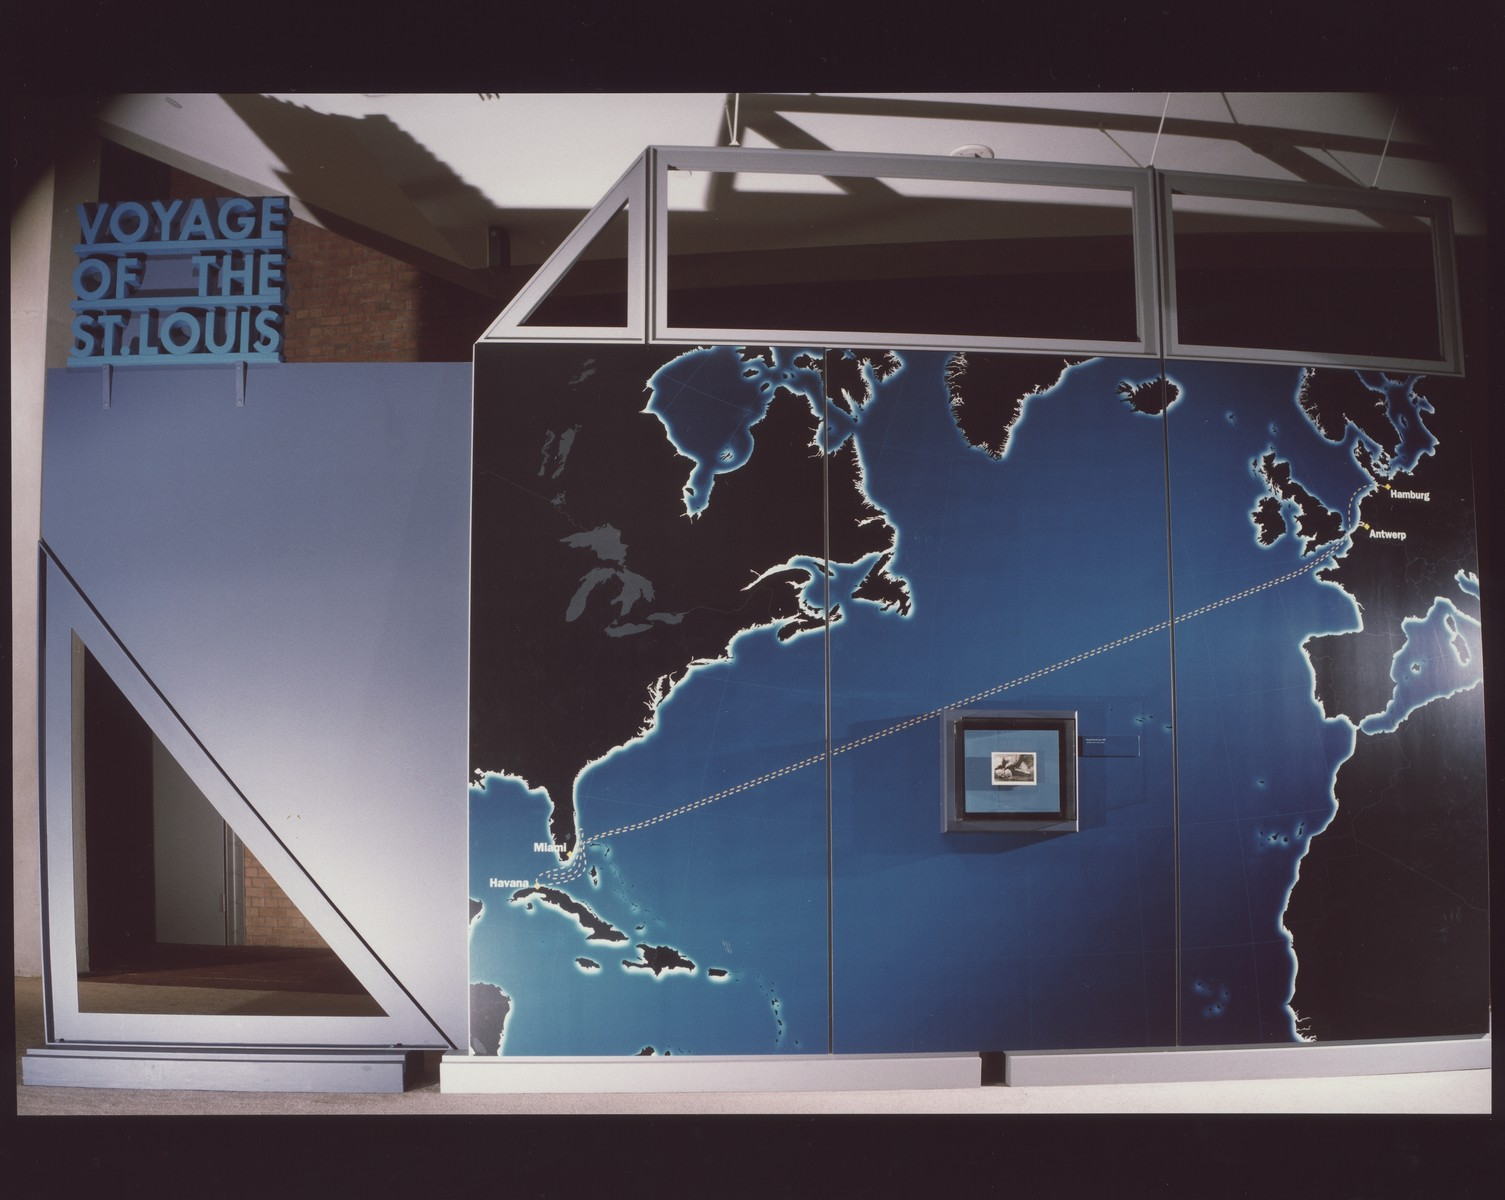 """Map display in the """"Voyage of the St. Louis"""" exhibition at the U.S. Holocaust Memorial Museum.  The """"Voyage of the St. Louis"""" exhibition was on display in the Gonda Education Center from April 11 to September 6, 1999."""